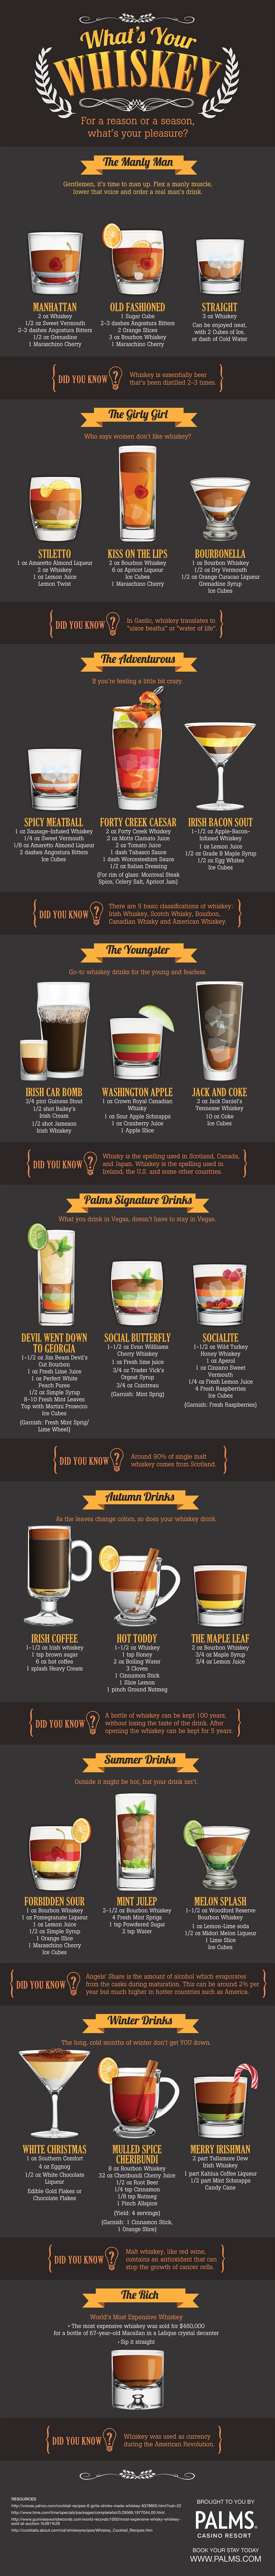 4 xPalms_Whats_Your_Whiskey_Infographic.jpg.pagespeed.ic.t8wrQo8gc9